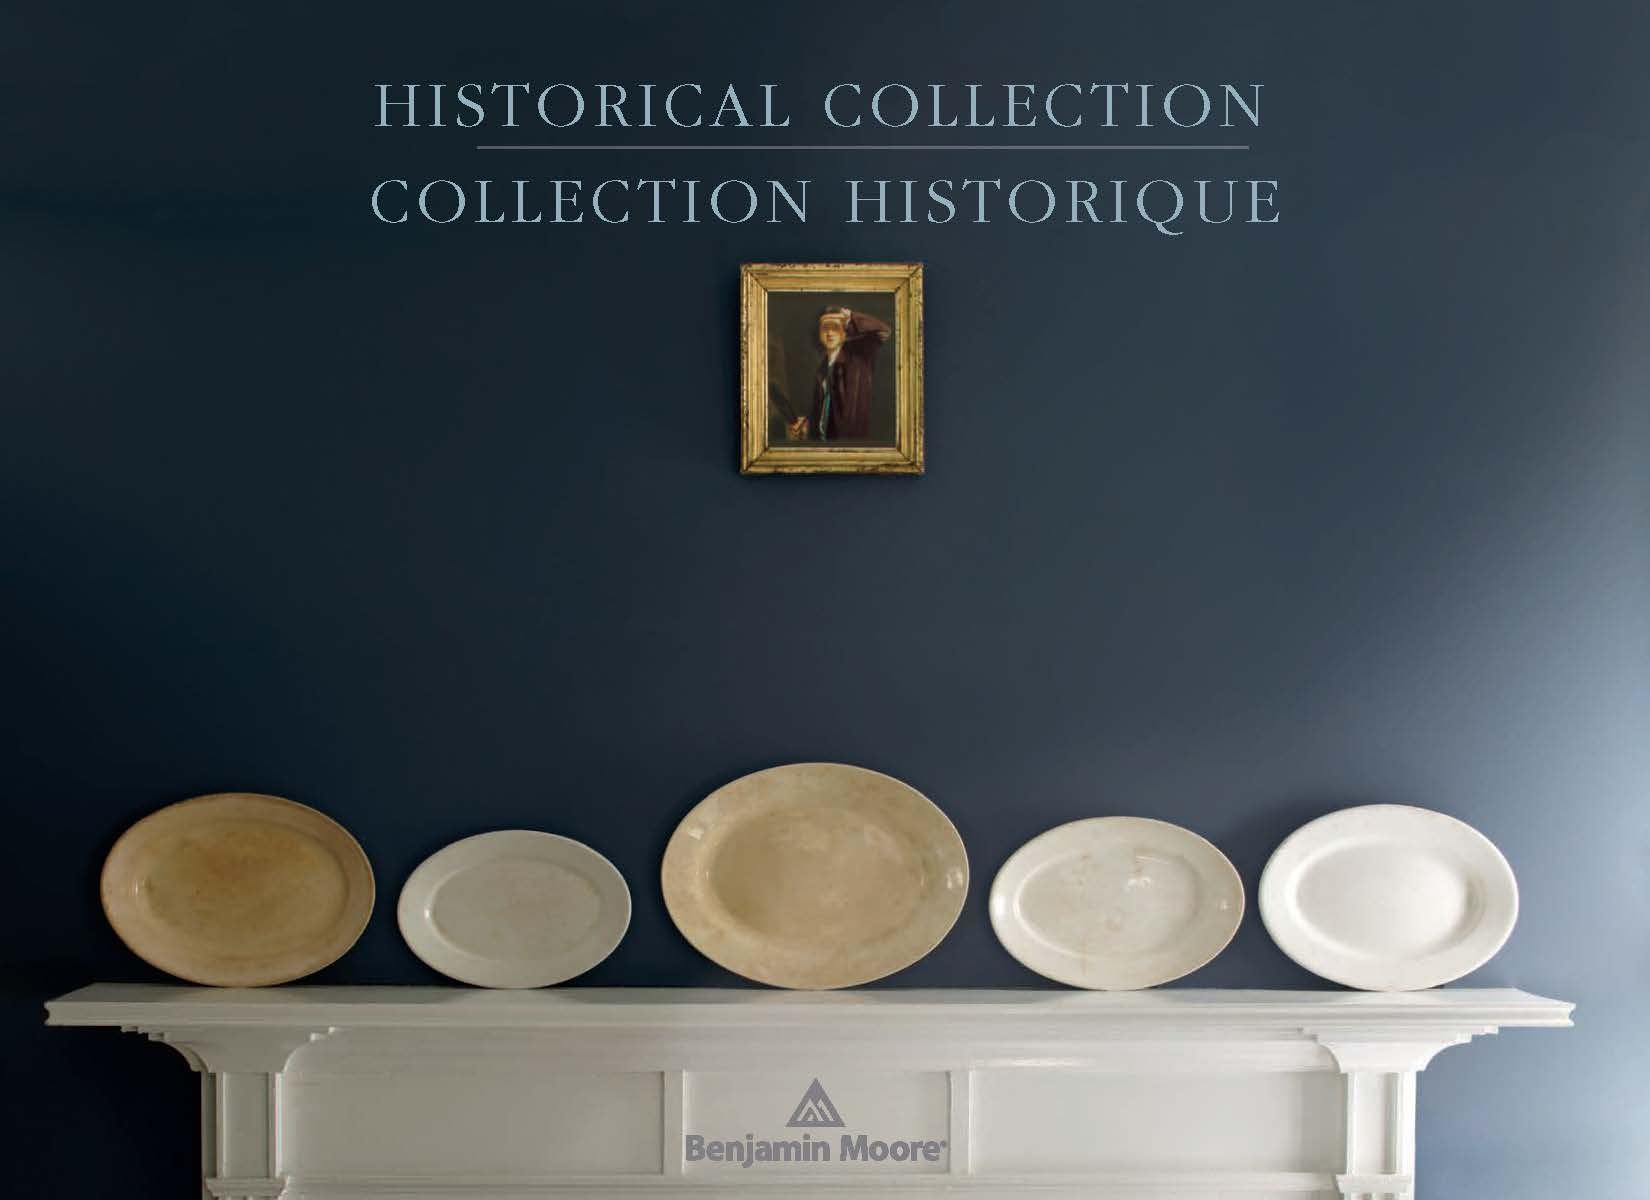 Benjamin Moore Catalog_Historical Collection Cover